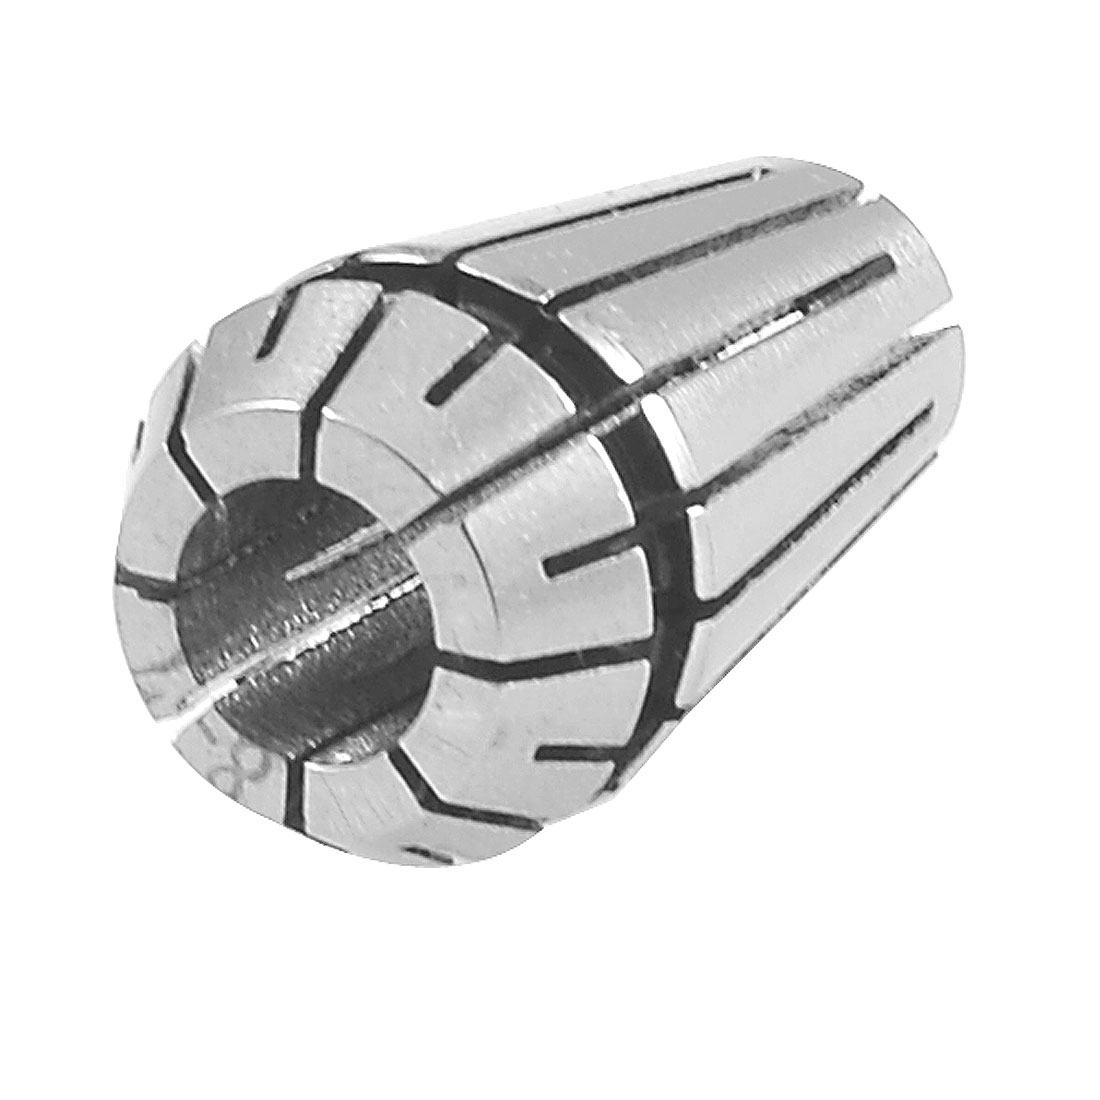 Stainless Steel 8mm-7mm Clamping Range ER16 Spring Collet Chuck